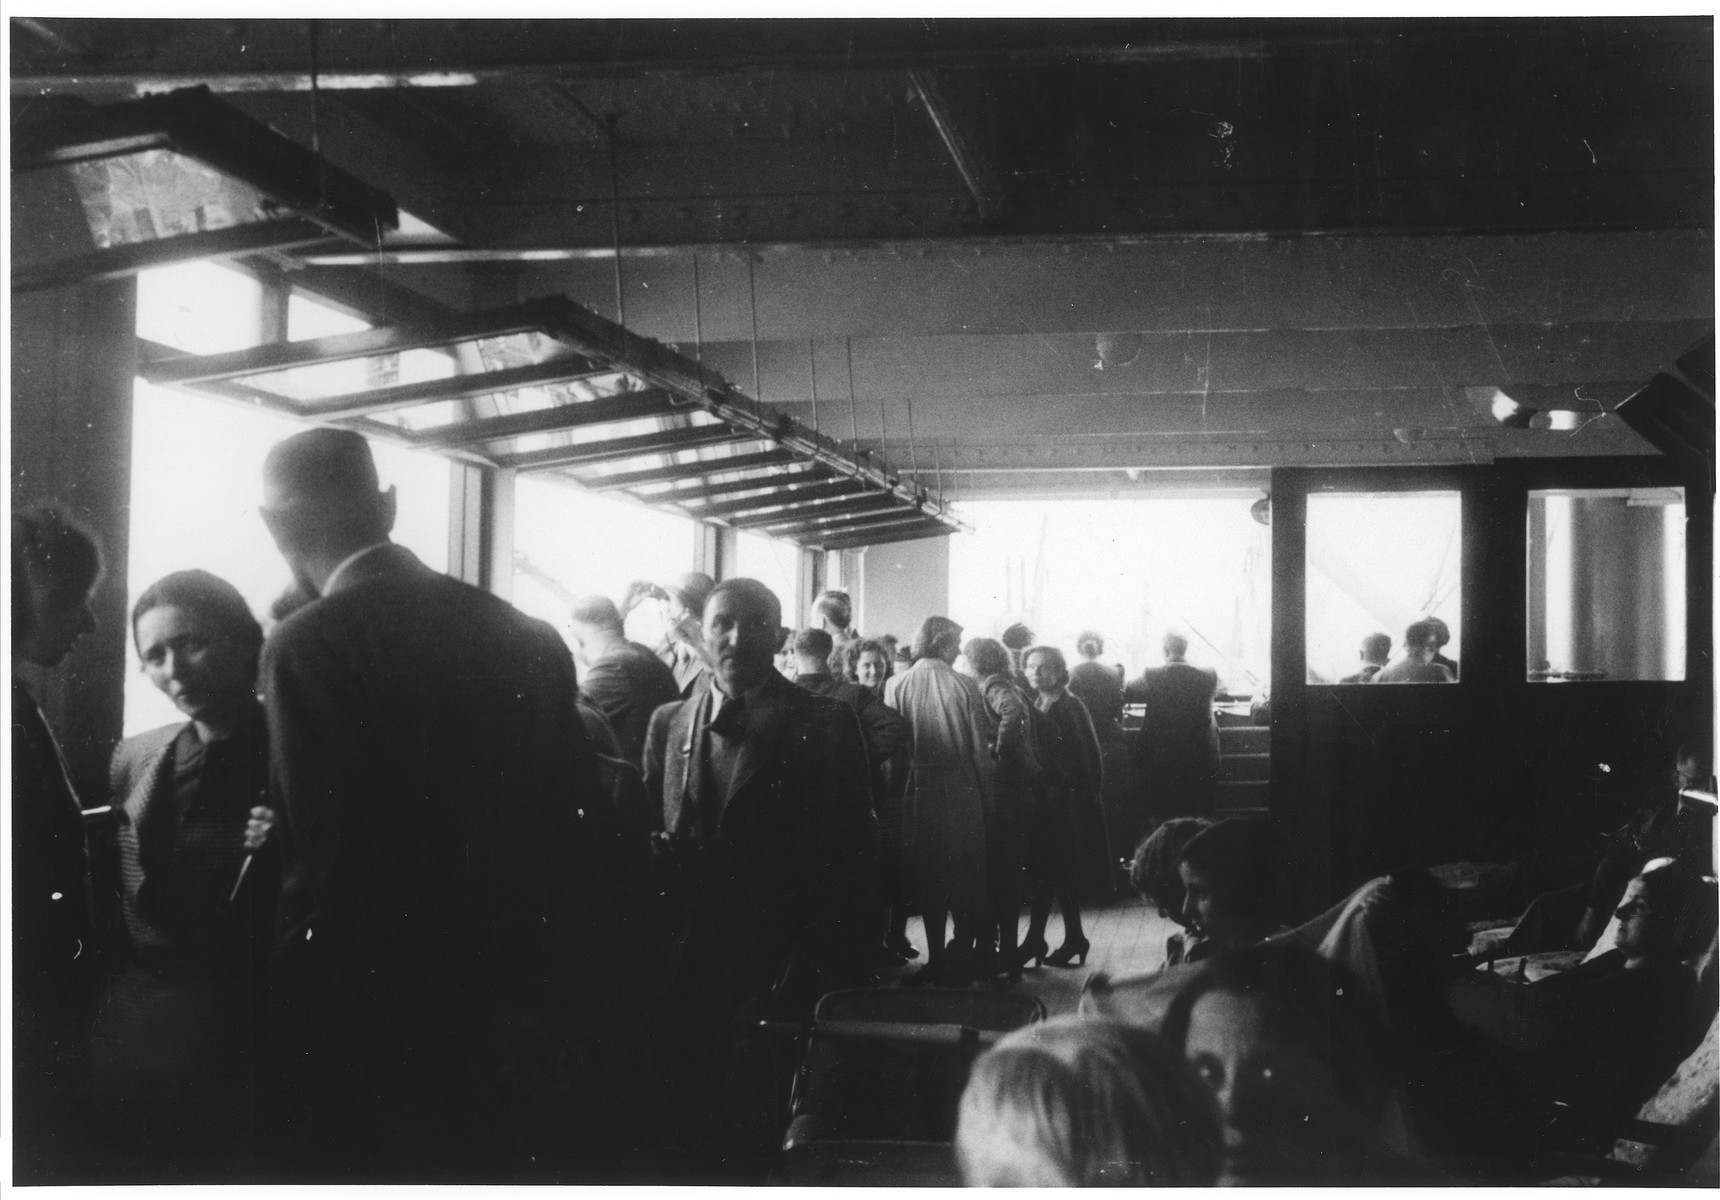 Jewish refugees gather below deck on the MS St. Louis.